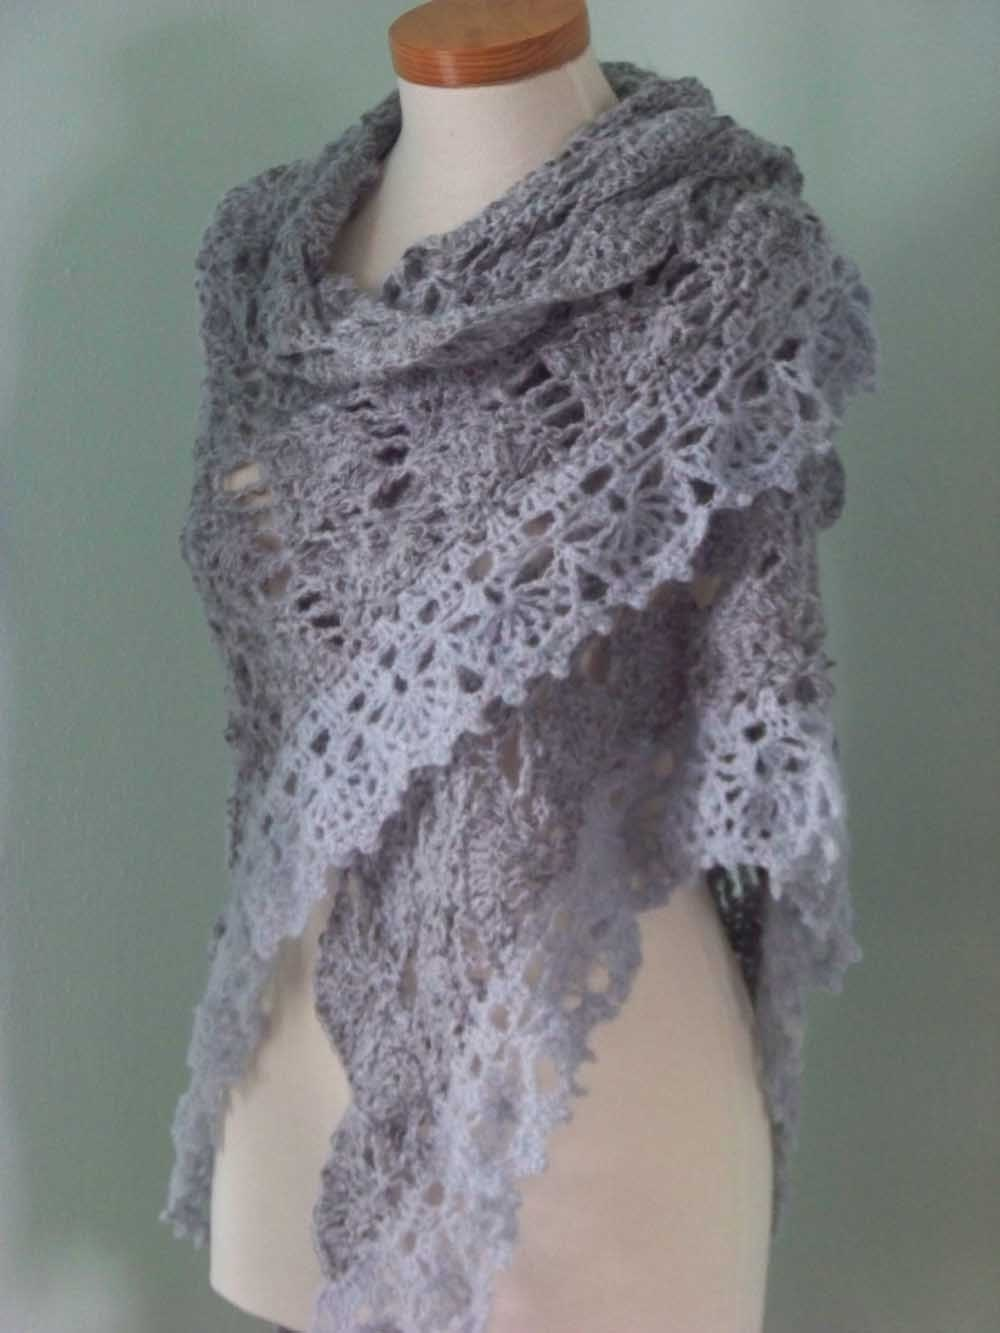 CROCHET EVENING WRAP PATTERN Crochet Patterns